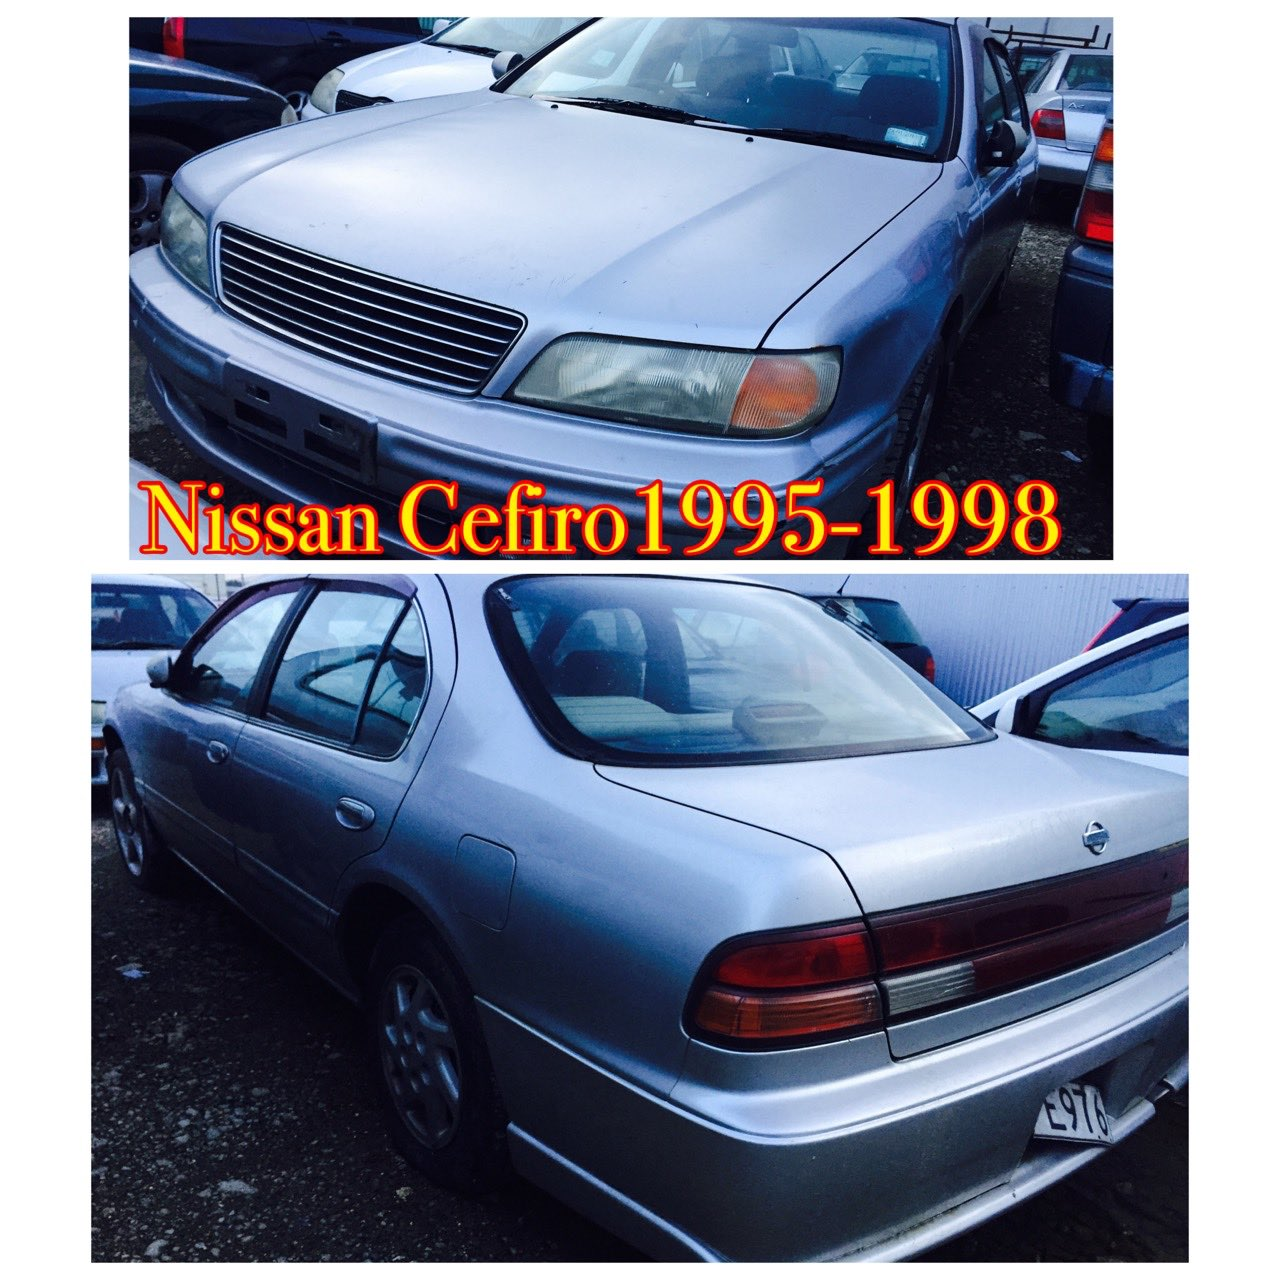 Nissan Cefiro 95 and 98